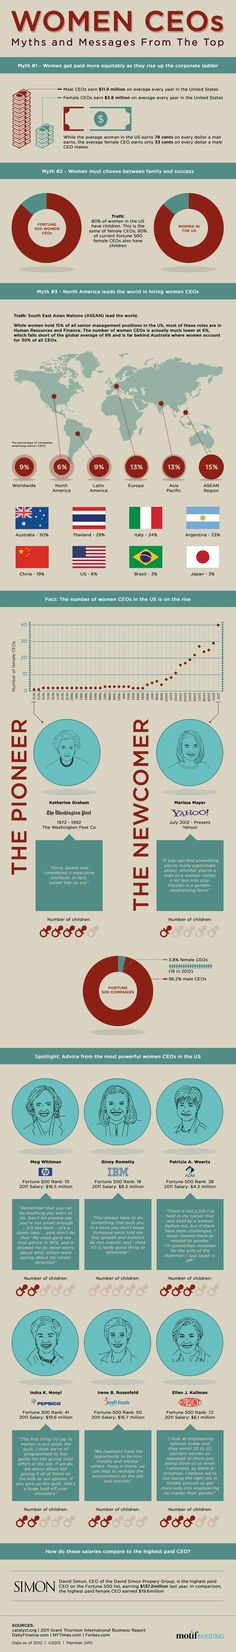 Women CEOs – Myths & Messages From The Top Infographic repinned by www.BlickeDeeler.de